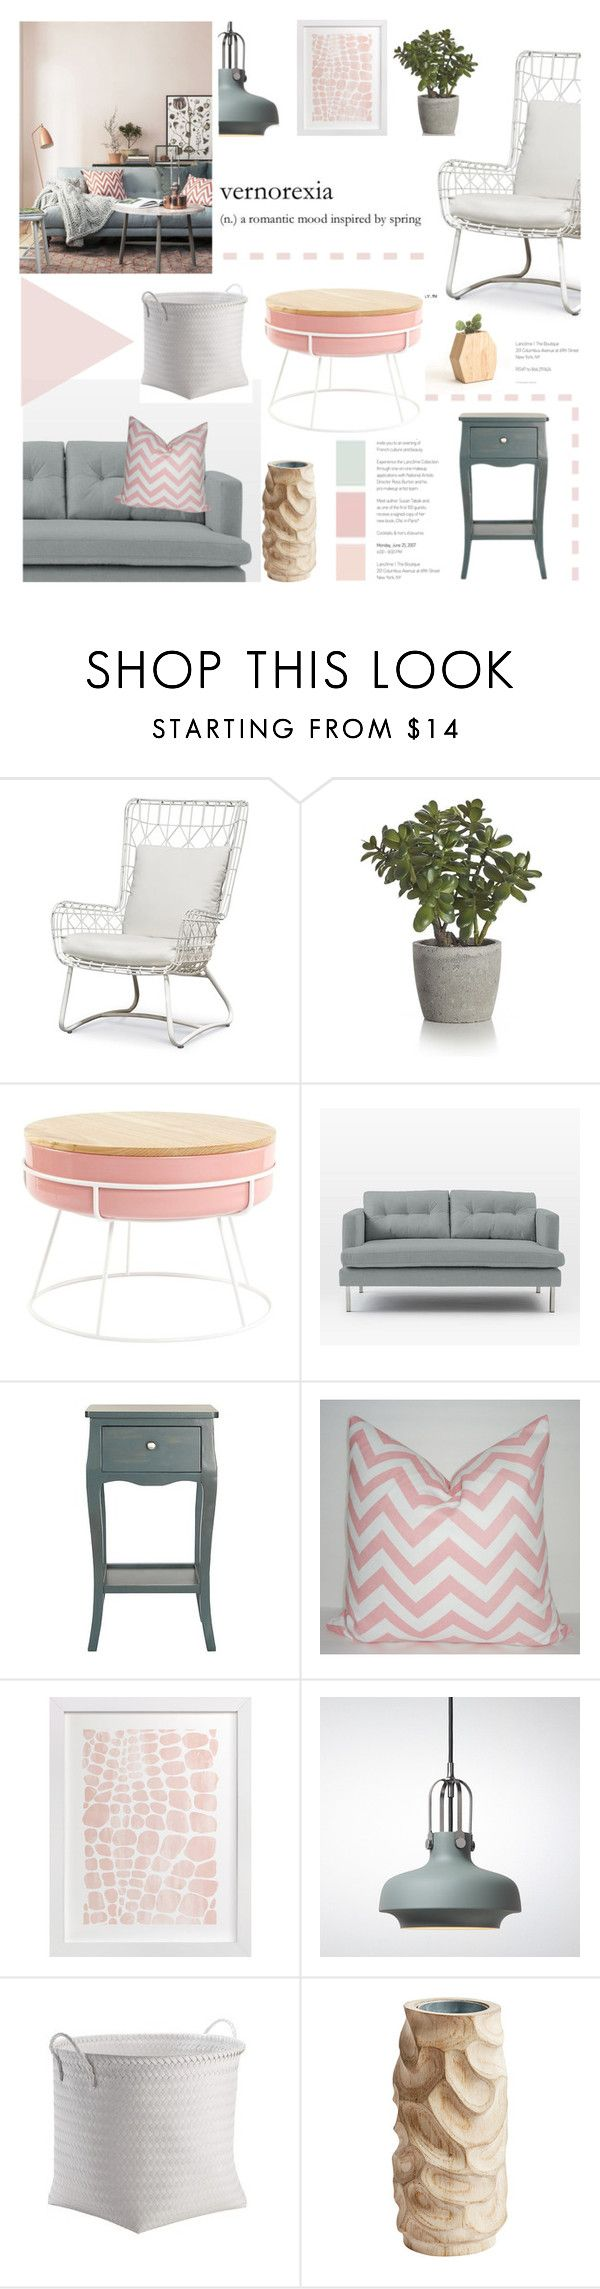 """""""Pretty Pastels"""" by fyenksfiona ❤ liked on Polyvore featuring interior, interiors, interior design, home, home decor, interior decorating, Palecek, Casafina, Crate and Barrel and West Elm"""